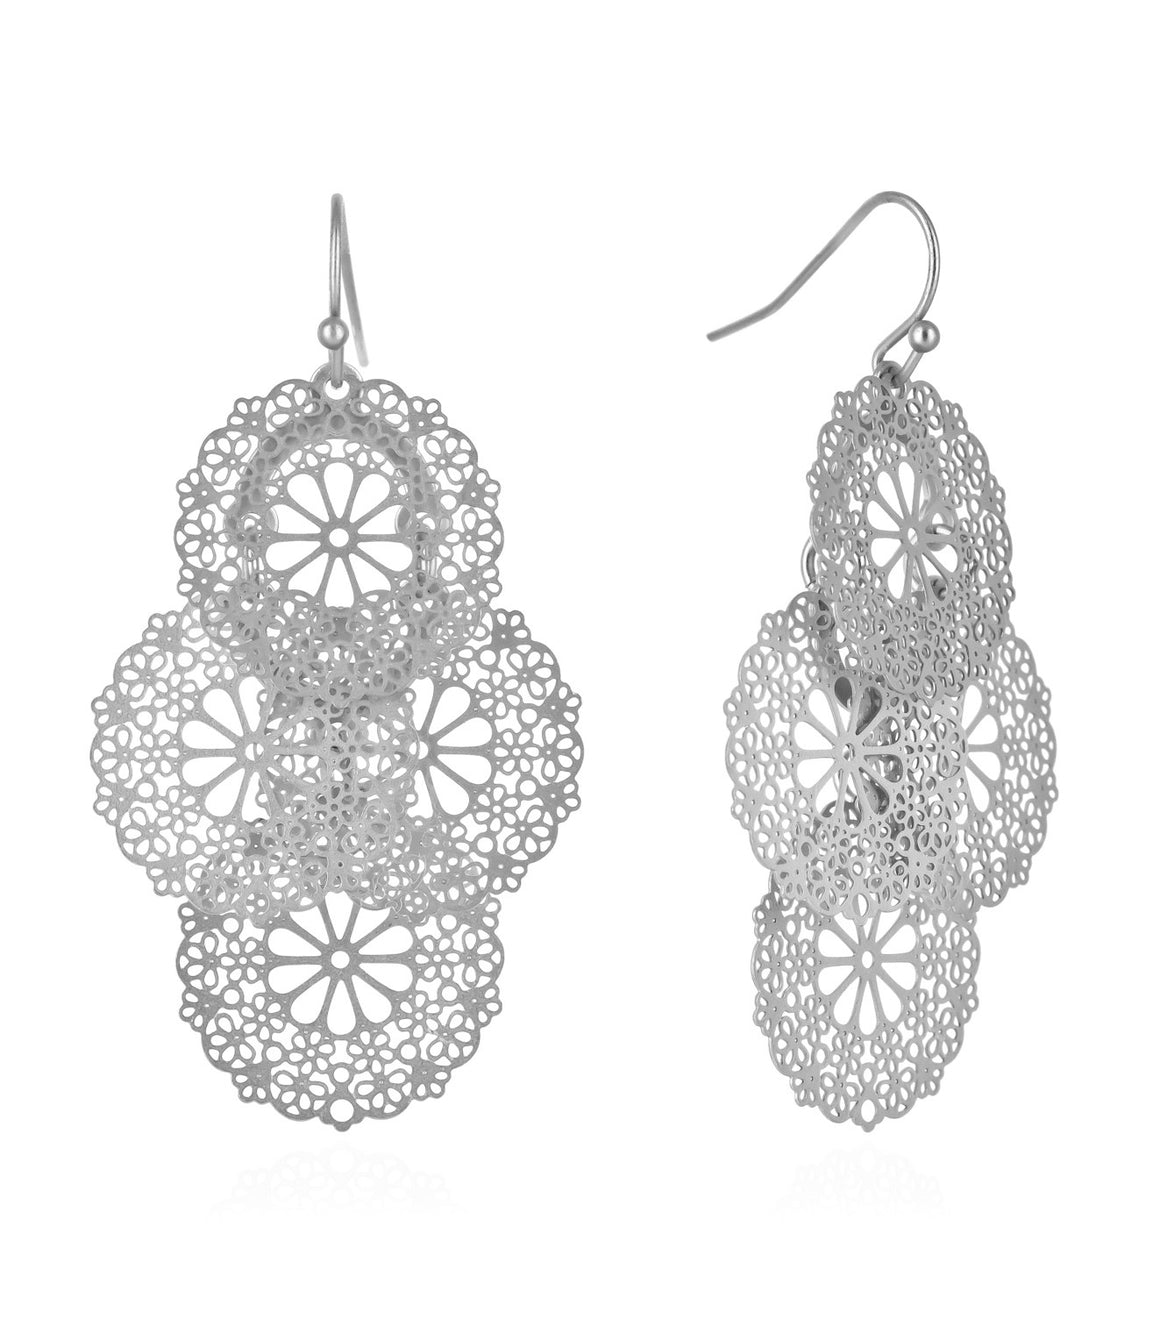 Chrysanthemum Filigree Chandelier Earrings